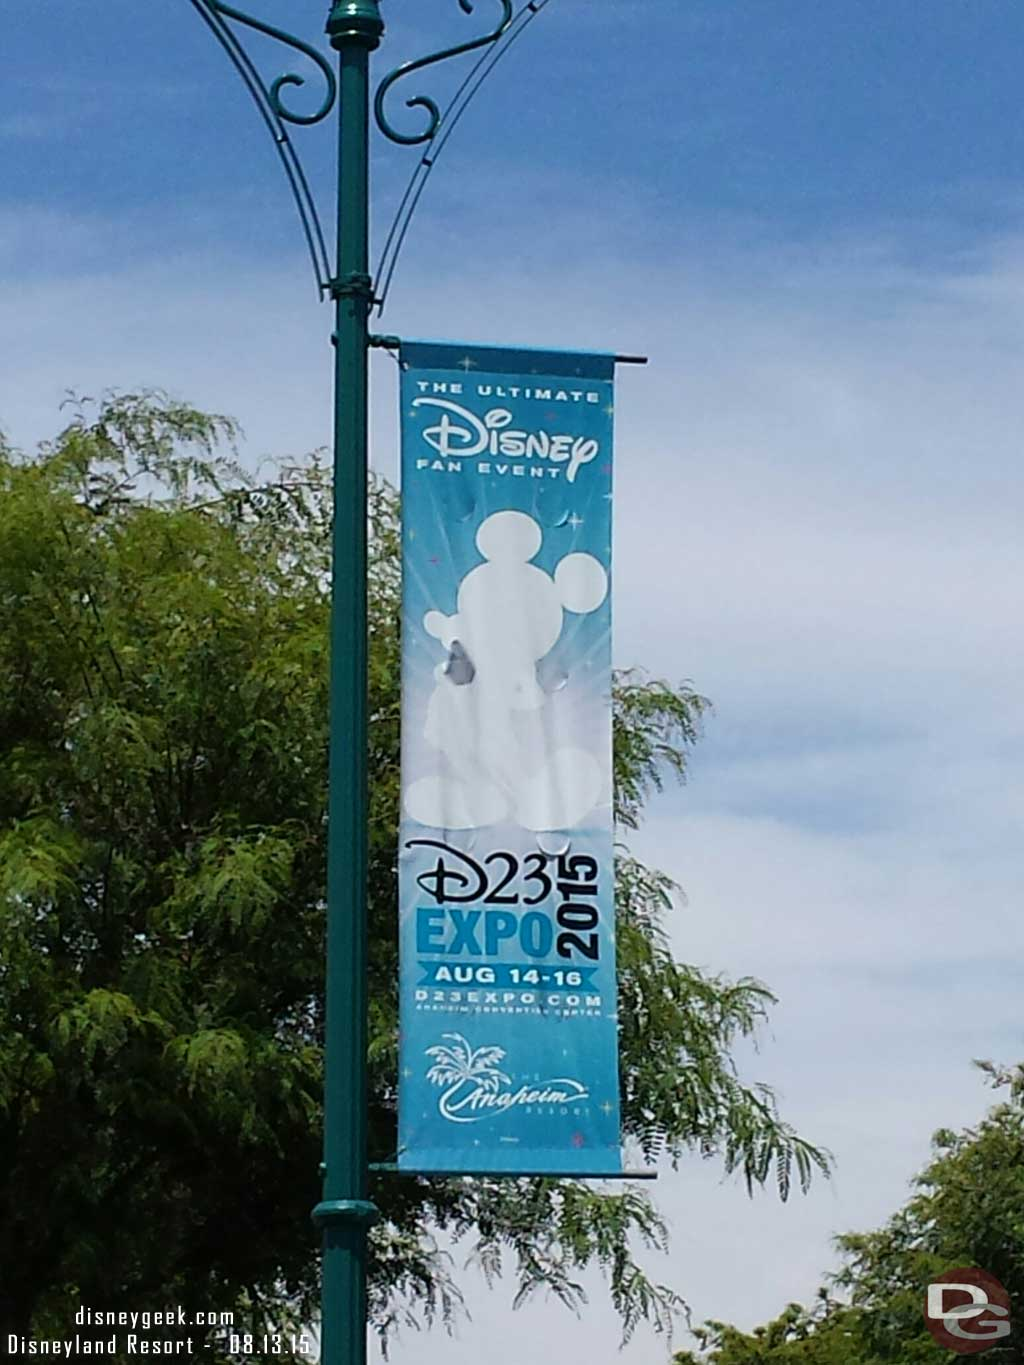 Just arrived in Anaheim for the #D23Expo